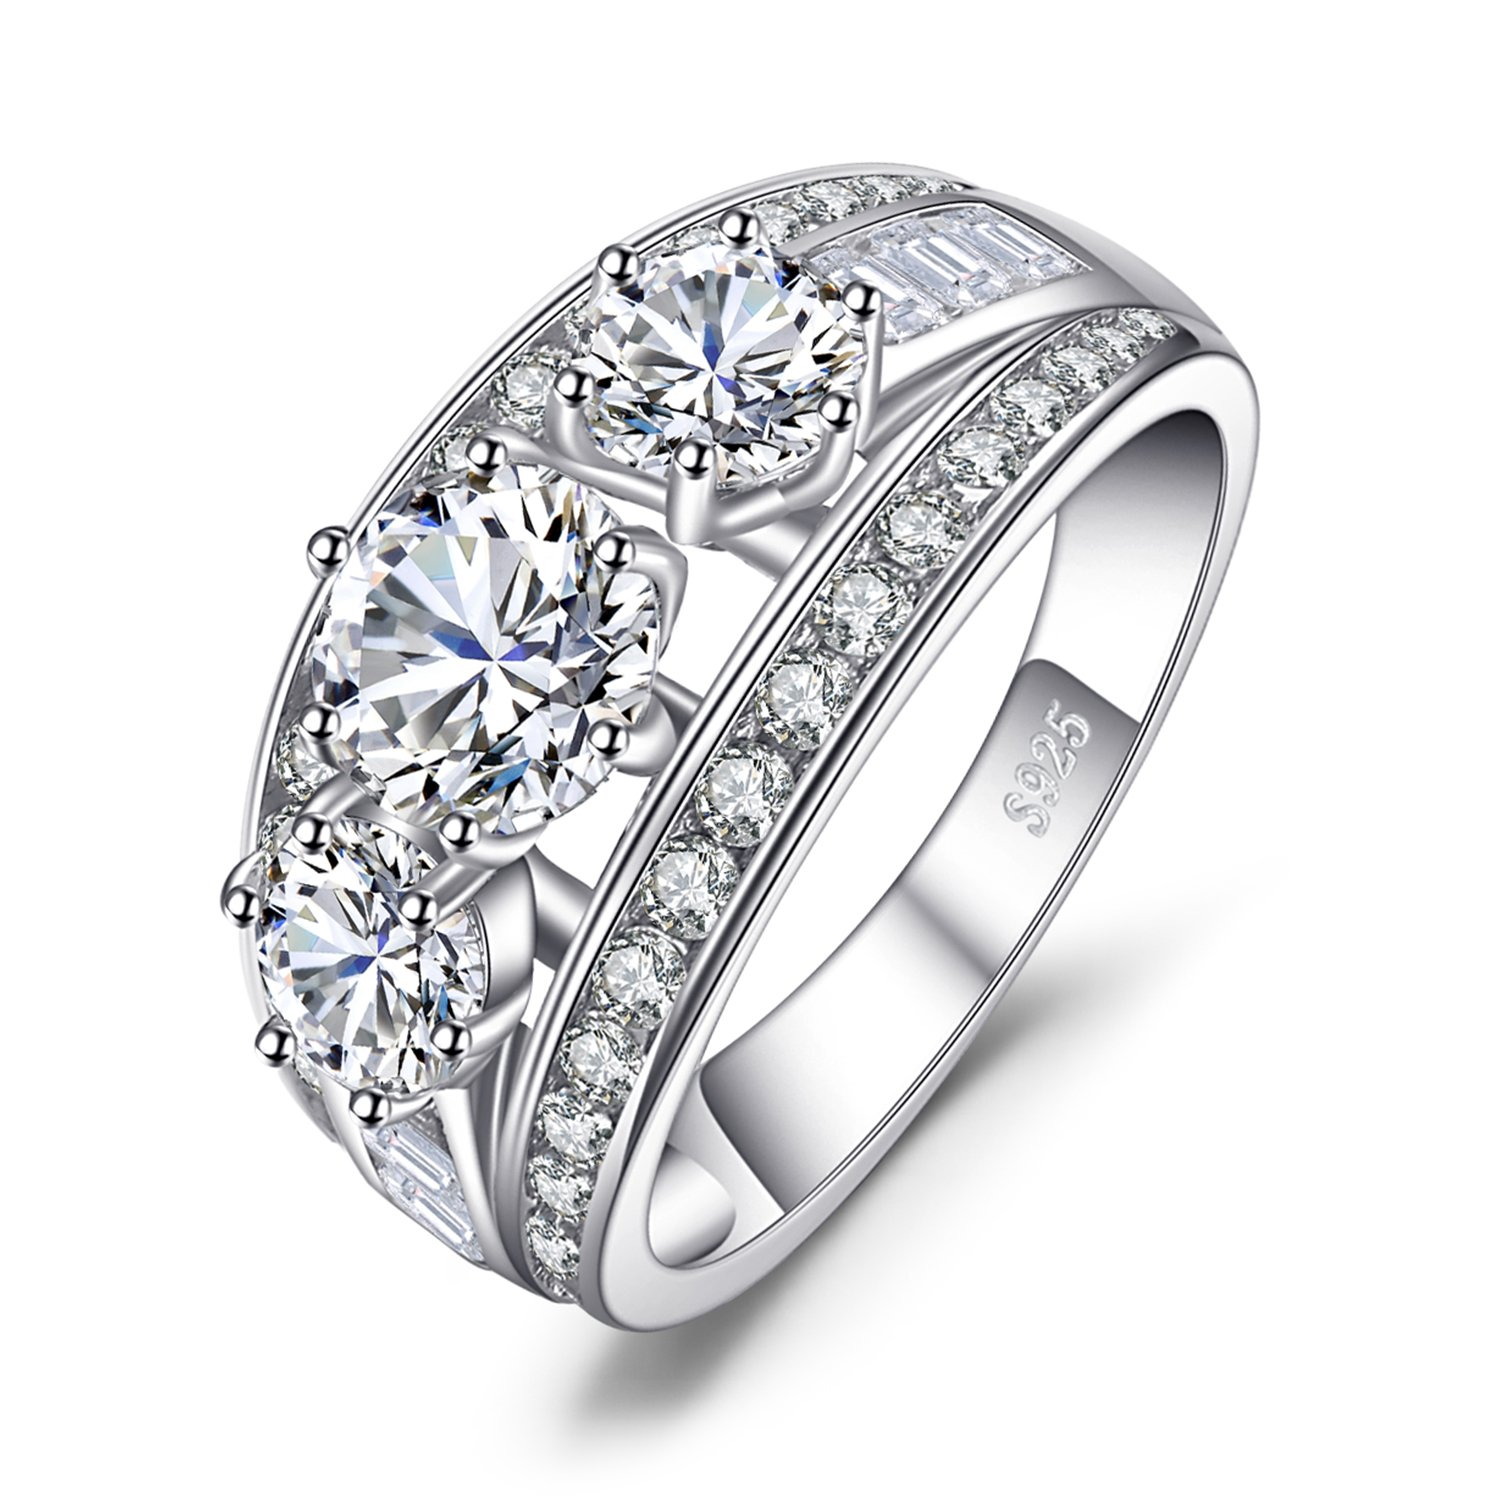 JewelryPalace 3ct Cubic Zirconia 3 Stone Anniversary Promise Wedding Ring 925 Sterling Silver AR872399